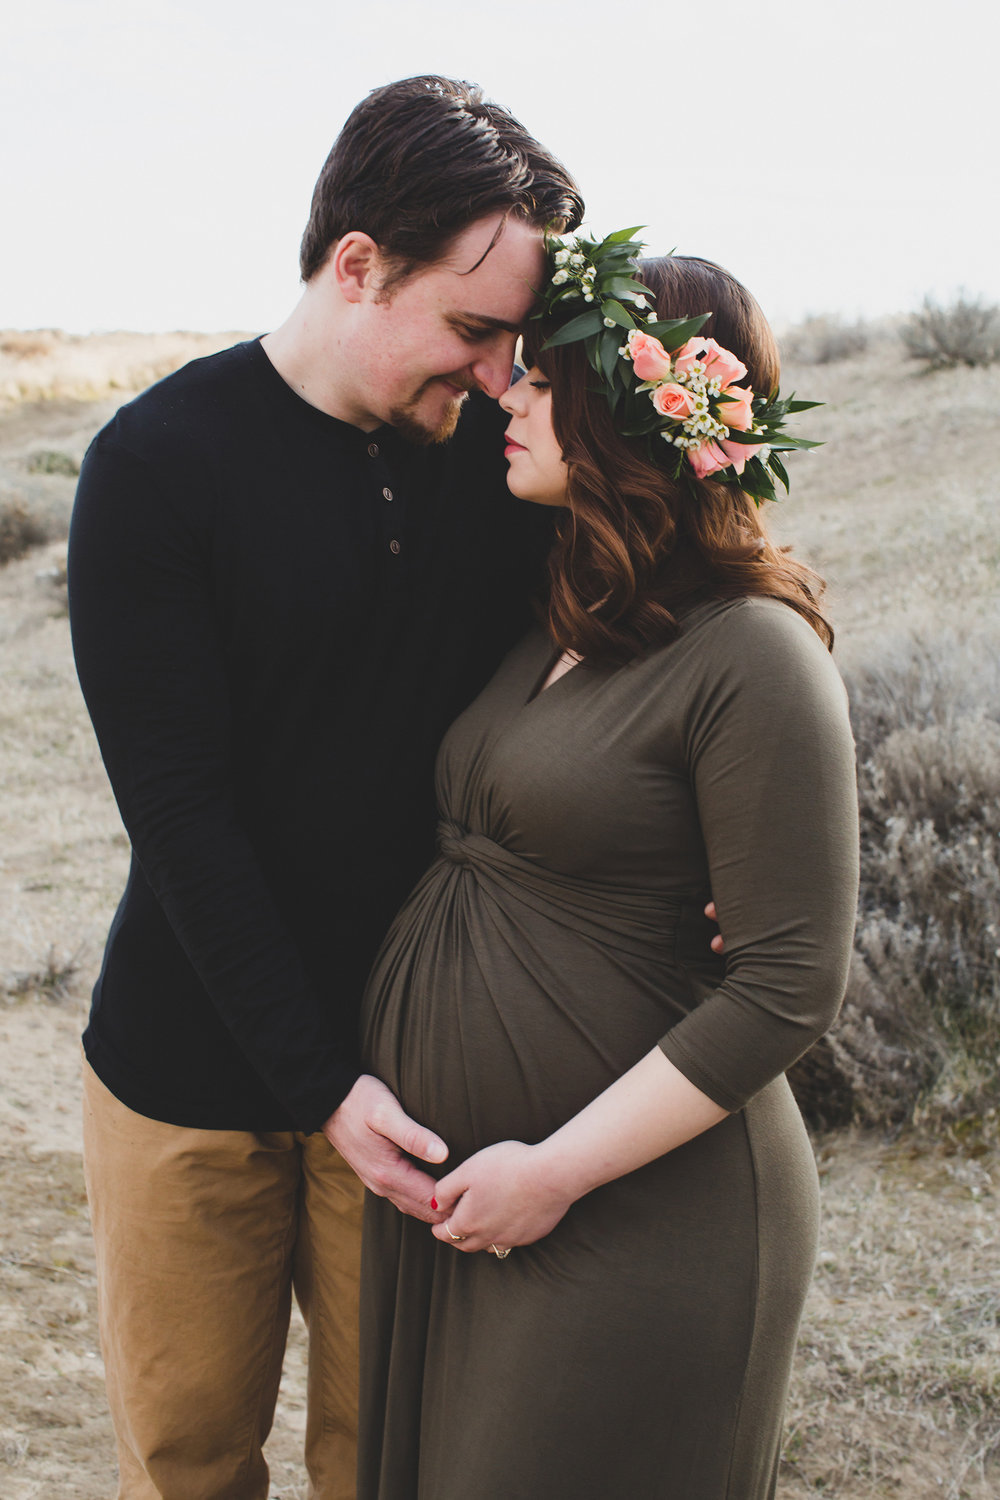 Tri Cities Maternity photographer_tri cities maternity_richland photographer_kennewick photographer_maternity session_red mountain_mama to be_parents to be_tri cities family session_red mountain trails_sage brush_horse_desert session_sunset session_7